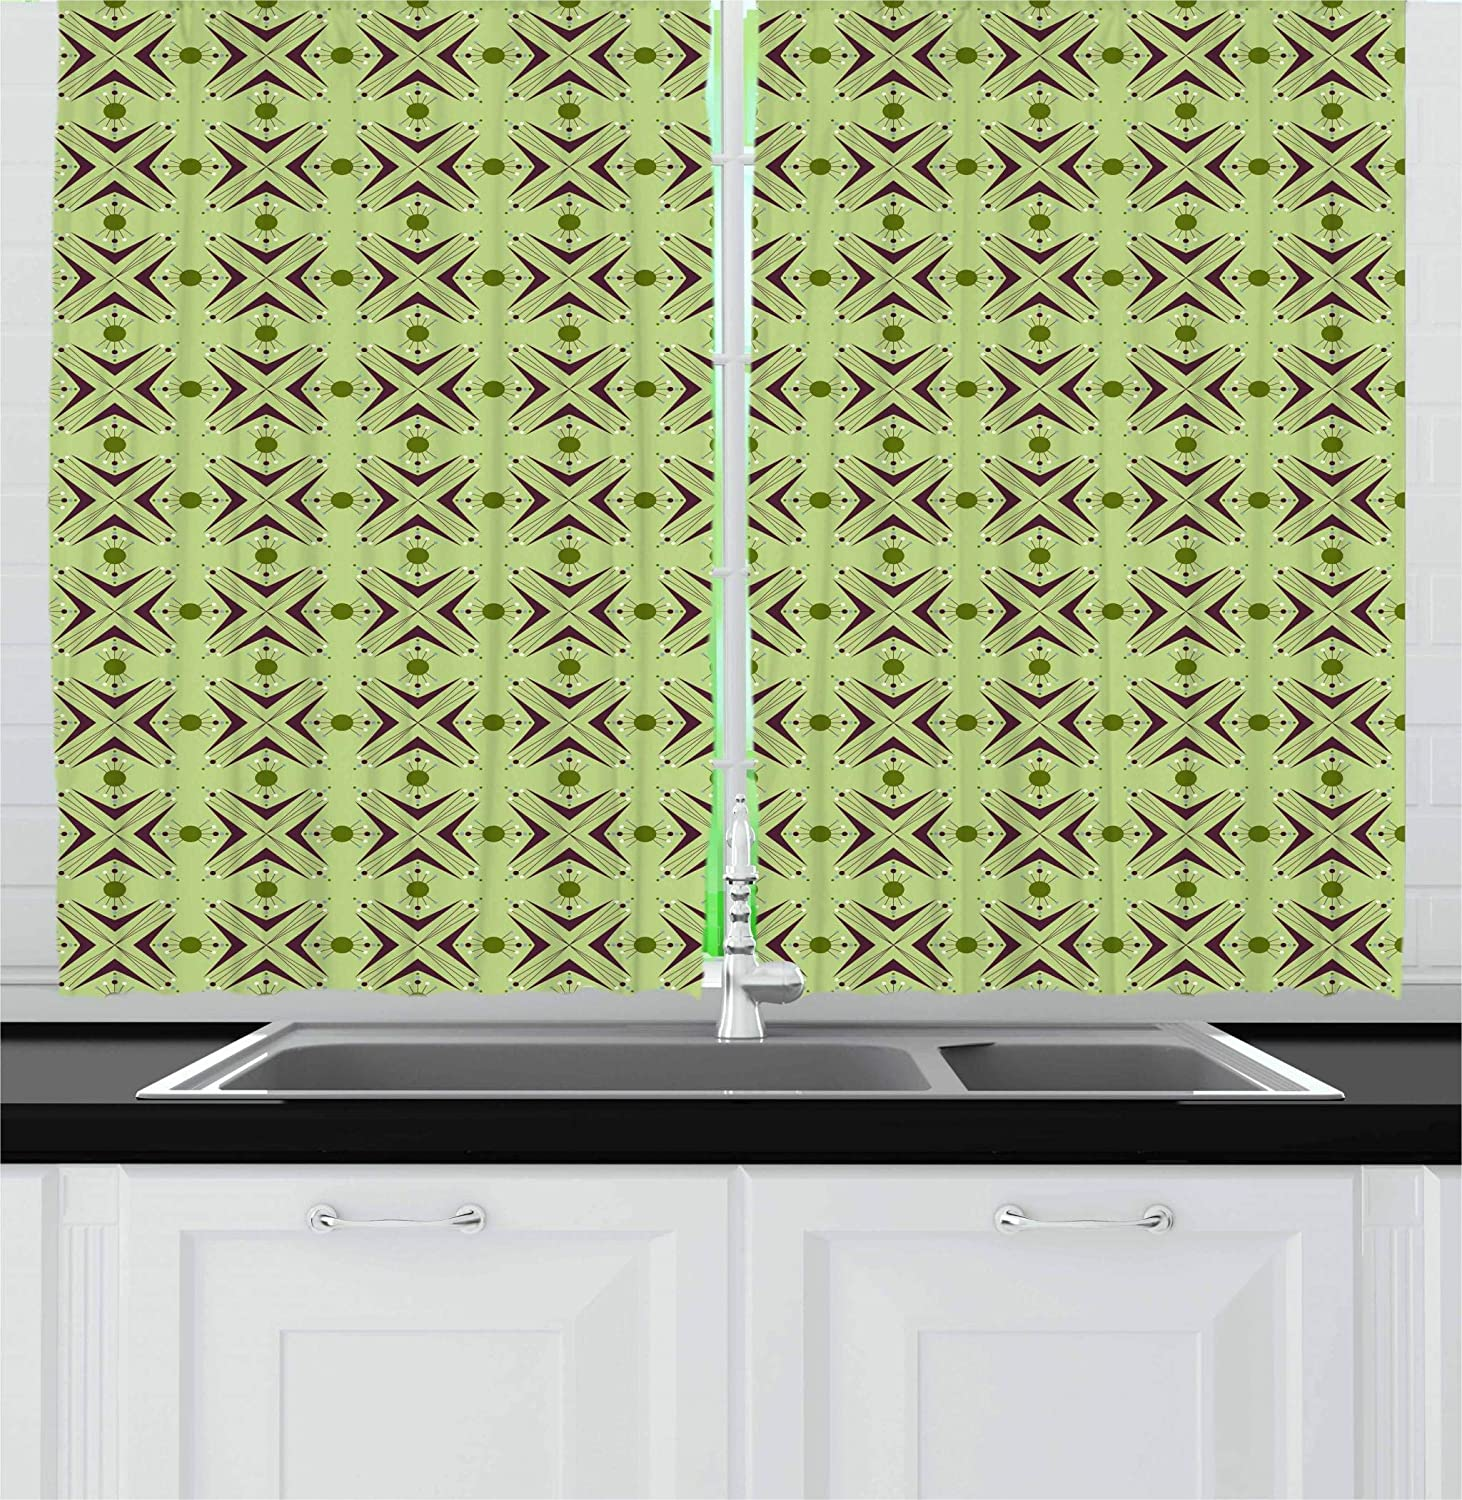 Amazon Com Berrly Movie Theater Kitchen Curtains Old Fashion Entertainment Objects Related To Cinema Film Reel Motion Picture Window Drapes 2 Panel Set For Kitchen Cafe Decor Yellow White W104 X L63 Inch